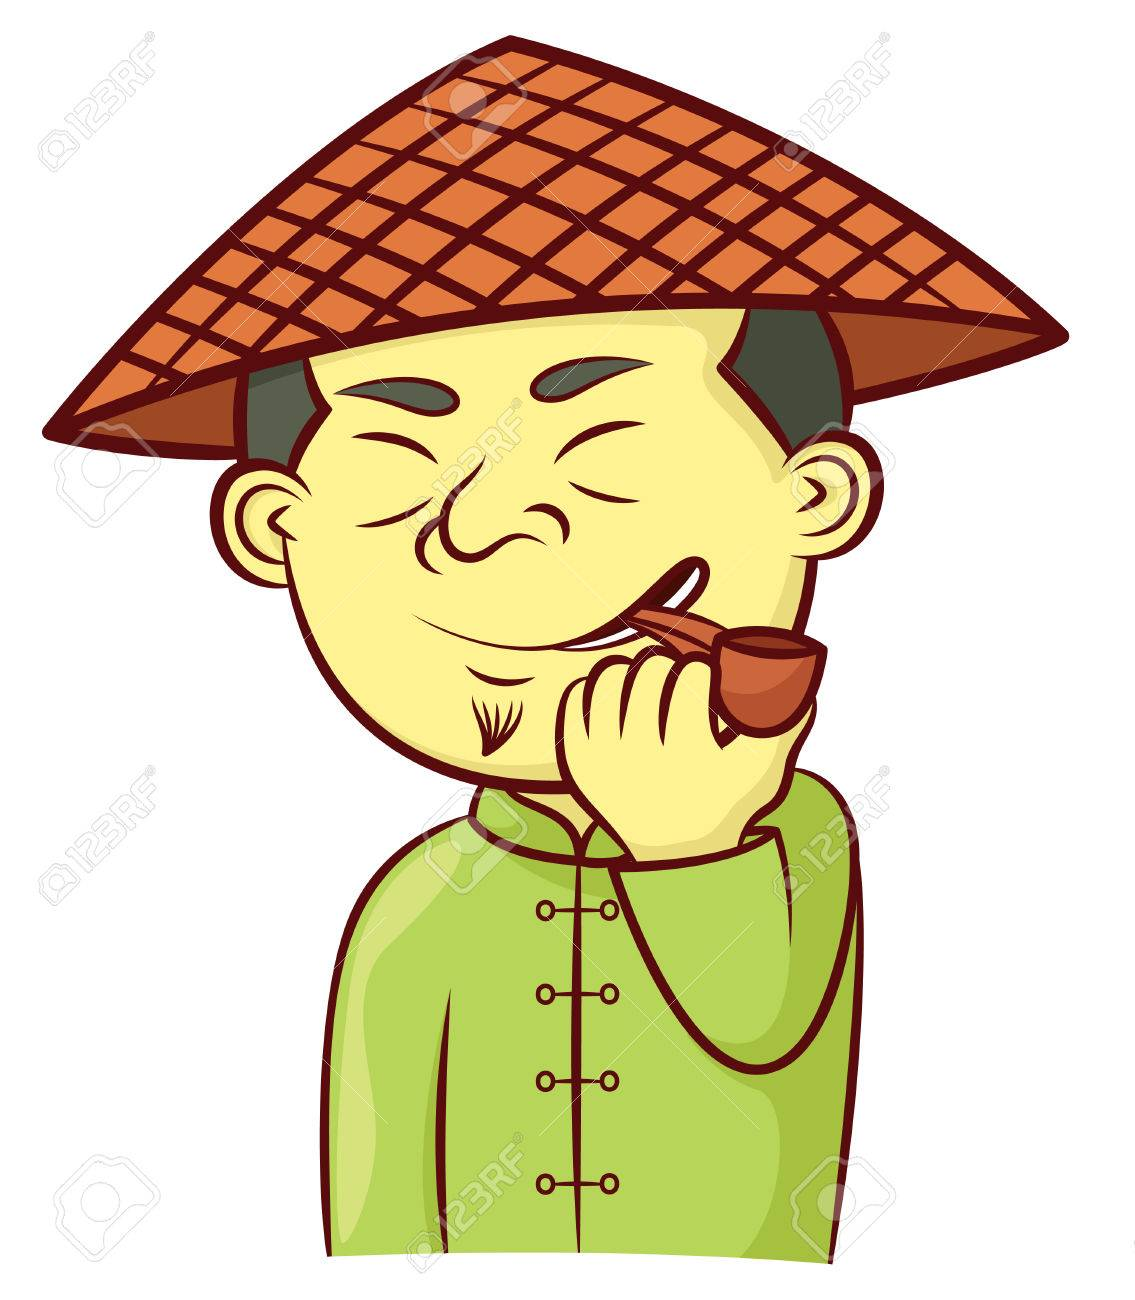 Chinese Man With Hat And Smoking Pipe Cartoon Royalty Free Cliparts